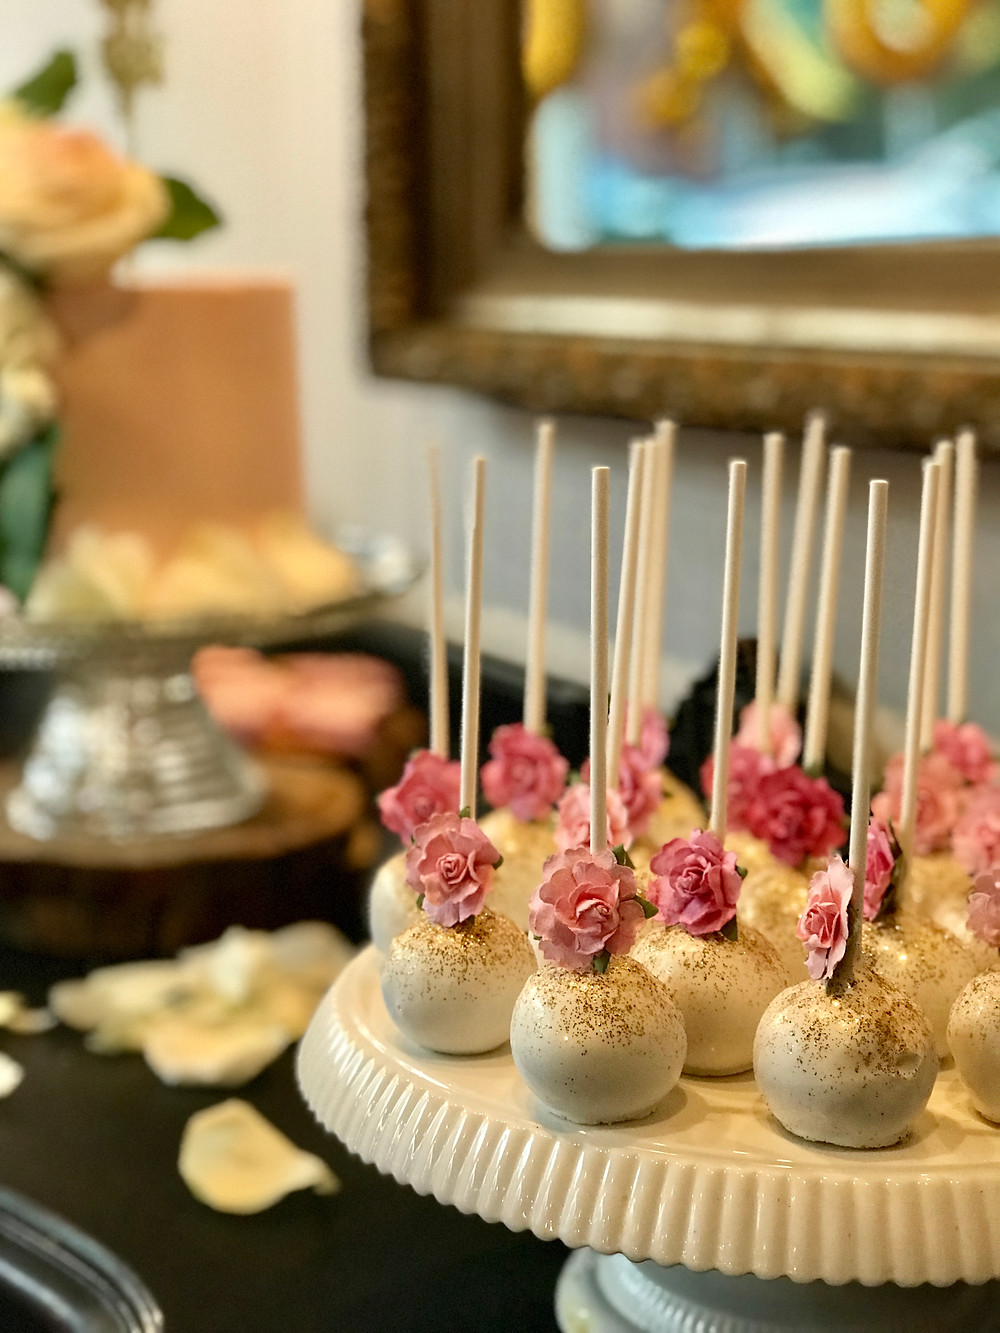 Tasty cake pops added to the deluxe display on the vintage sweets table at The Loft